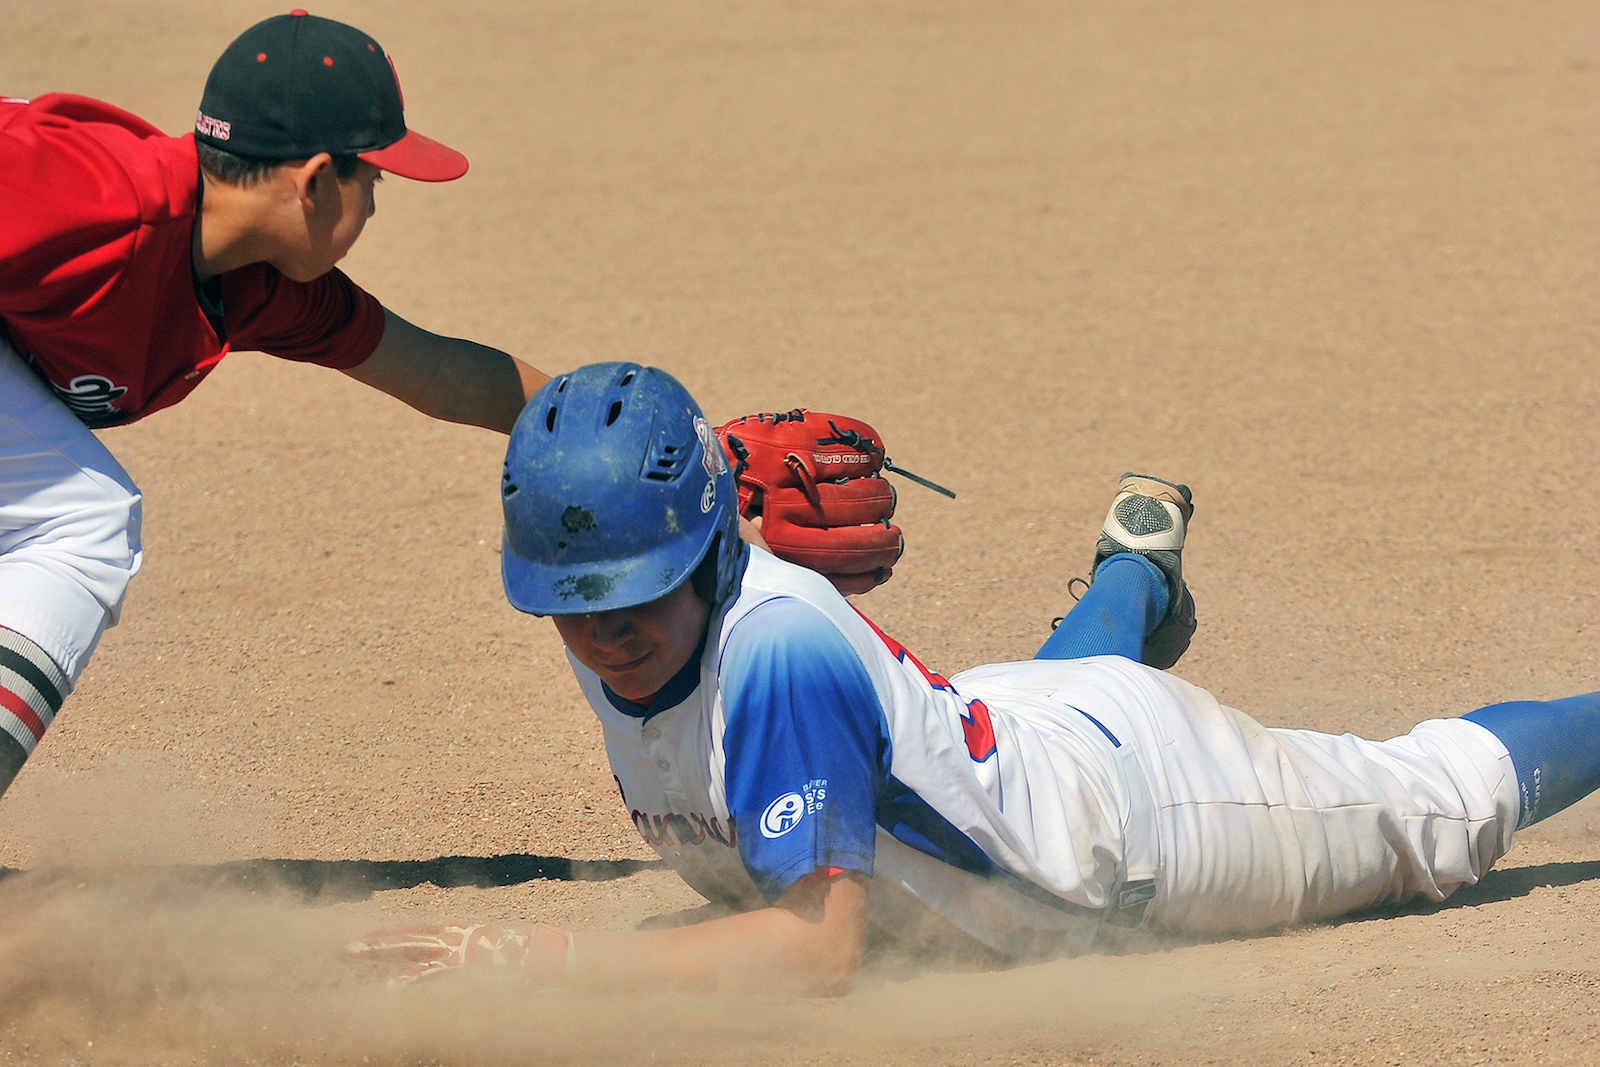 INFOGRAPHIC: Avoiding and Preventing Heat Related Injuries When Playing Baseball